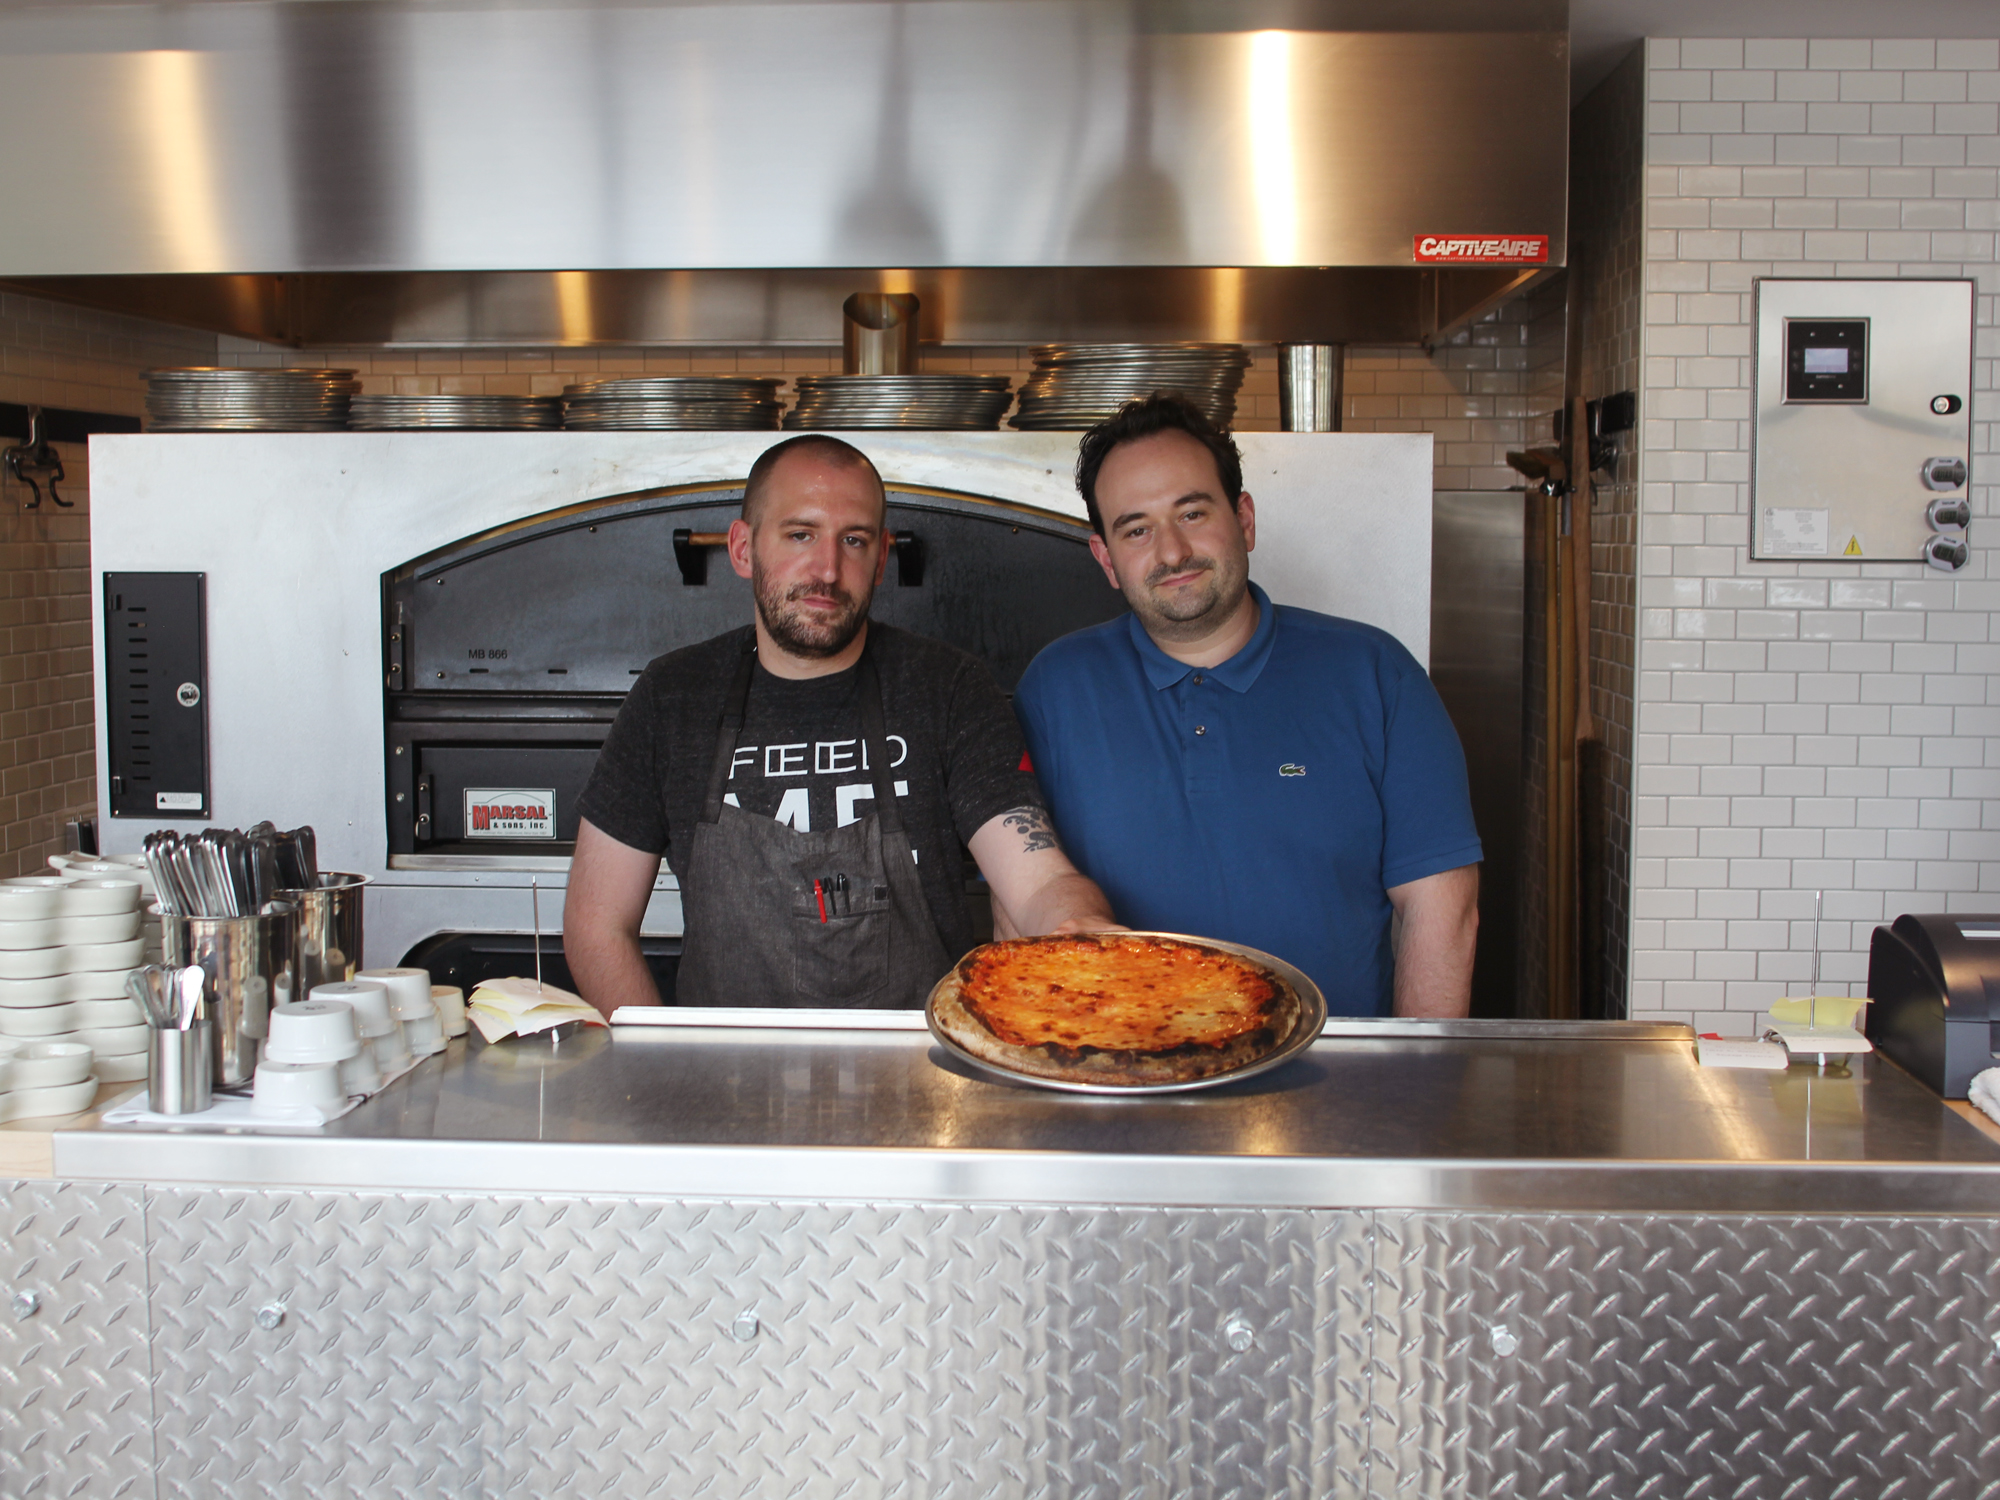 THEY TURNED FAMILY MEAL INTO A PIZZERIA OF THEIR OWN